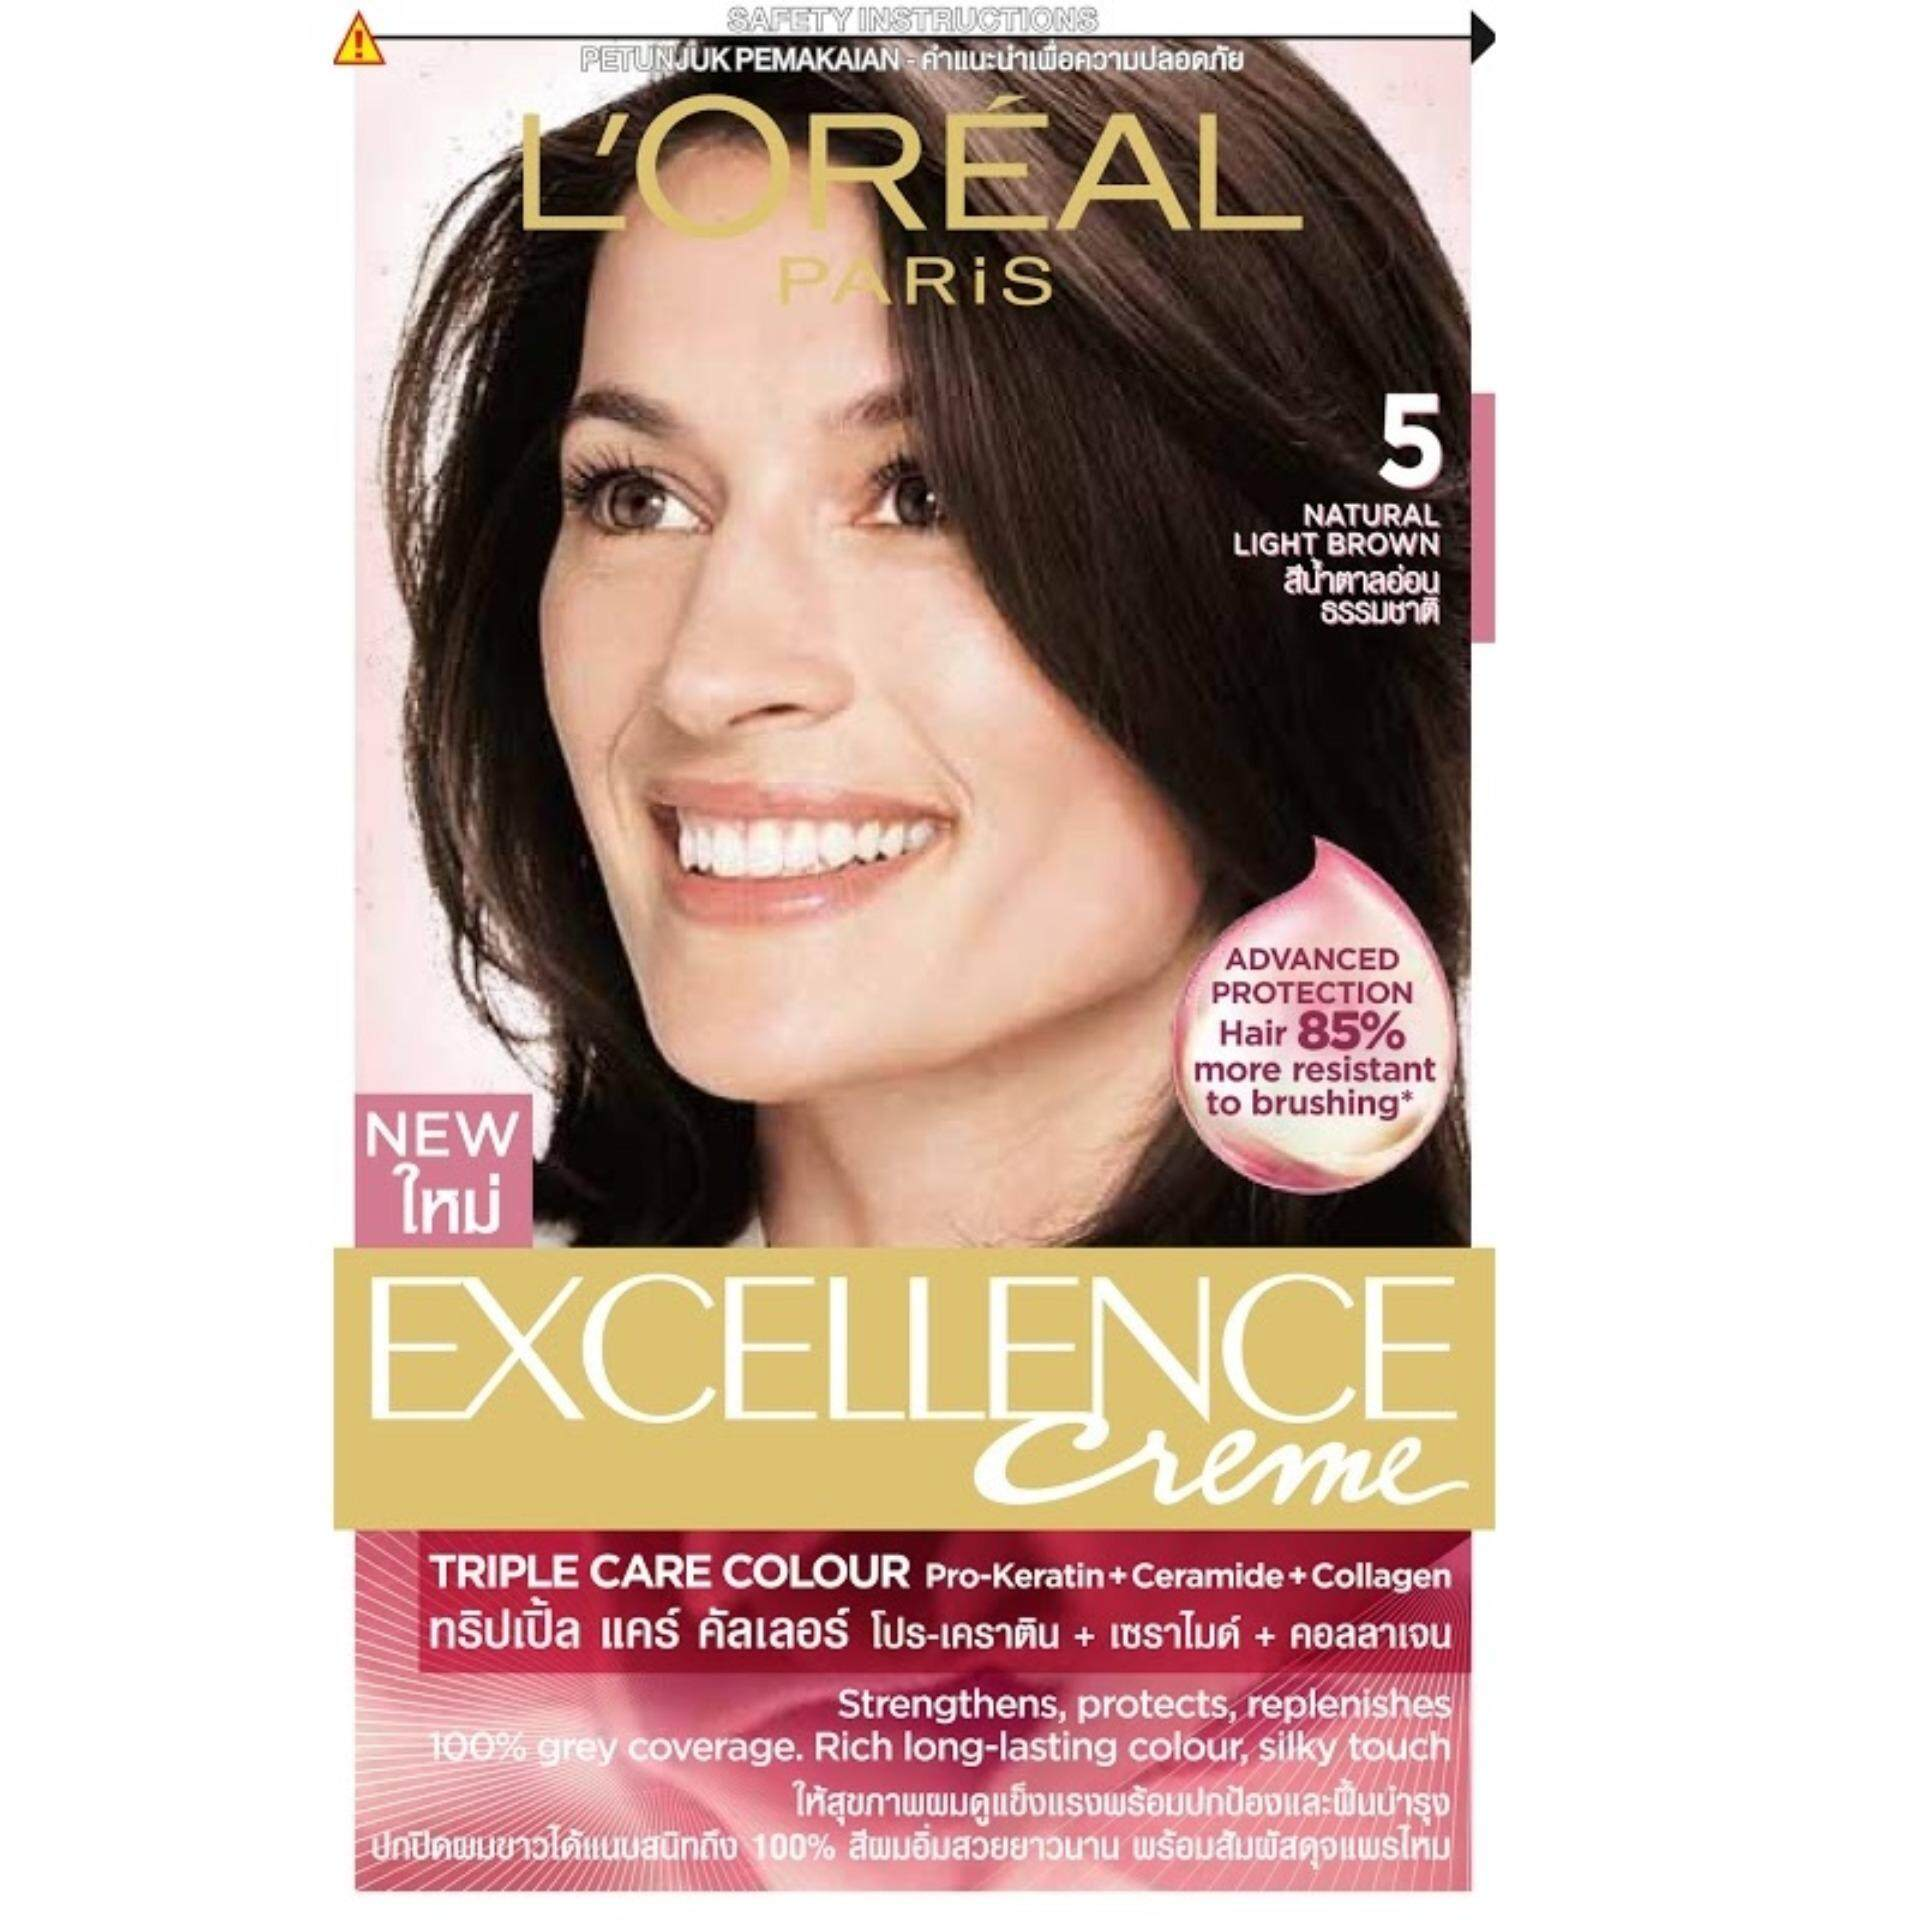 Loreal paris hair care hair coloring price in malaysia best l loreal paris excellence creme 5 natural light brown geenschuldenfo Images